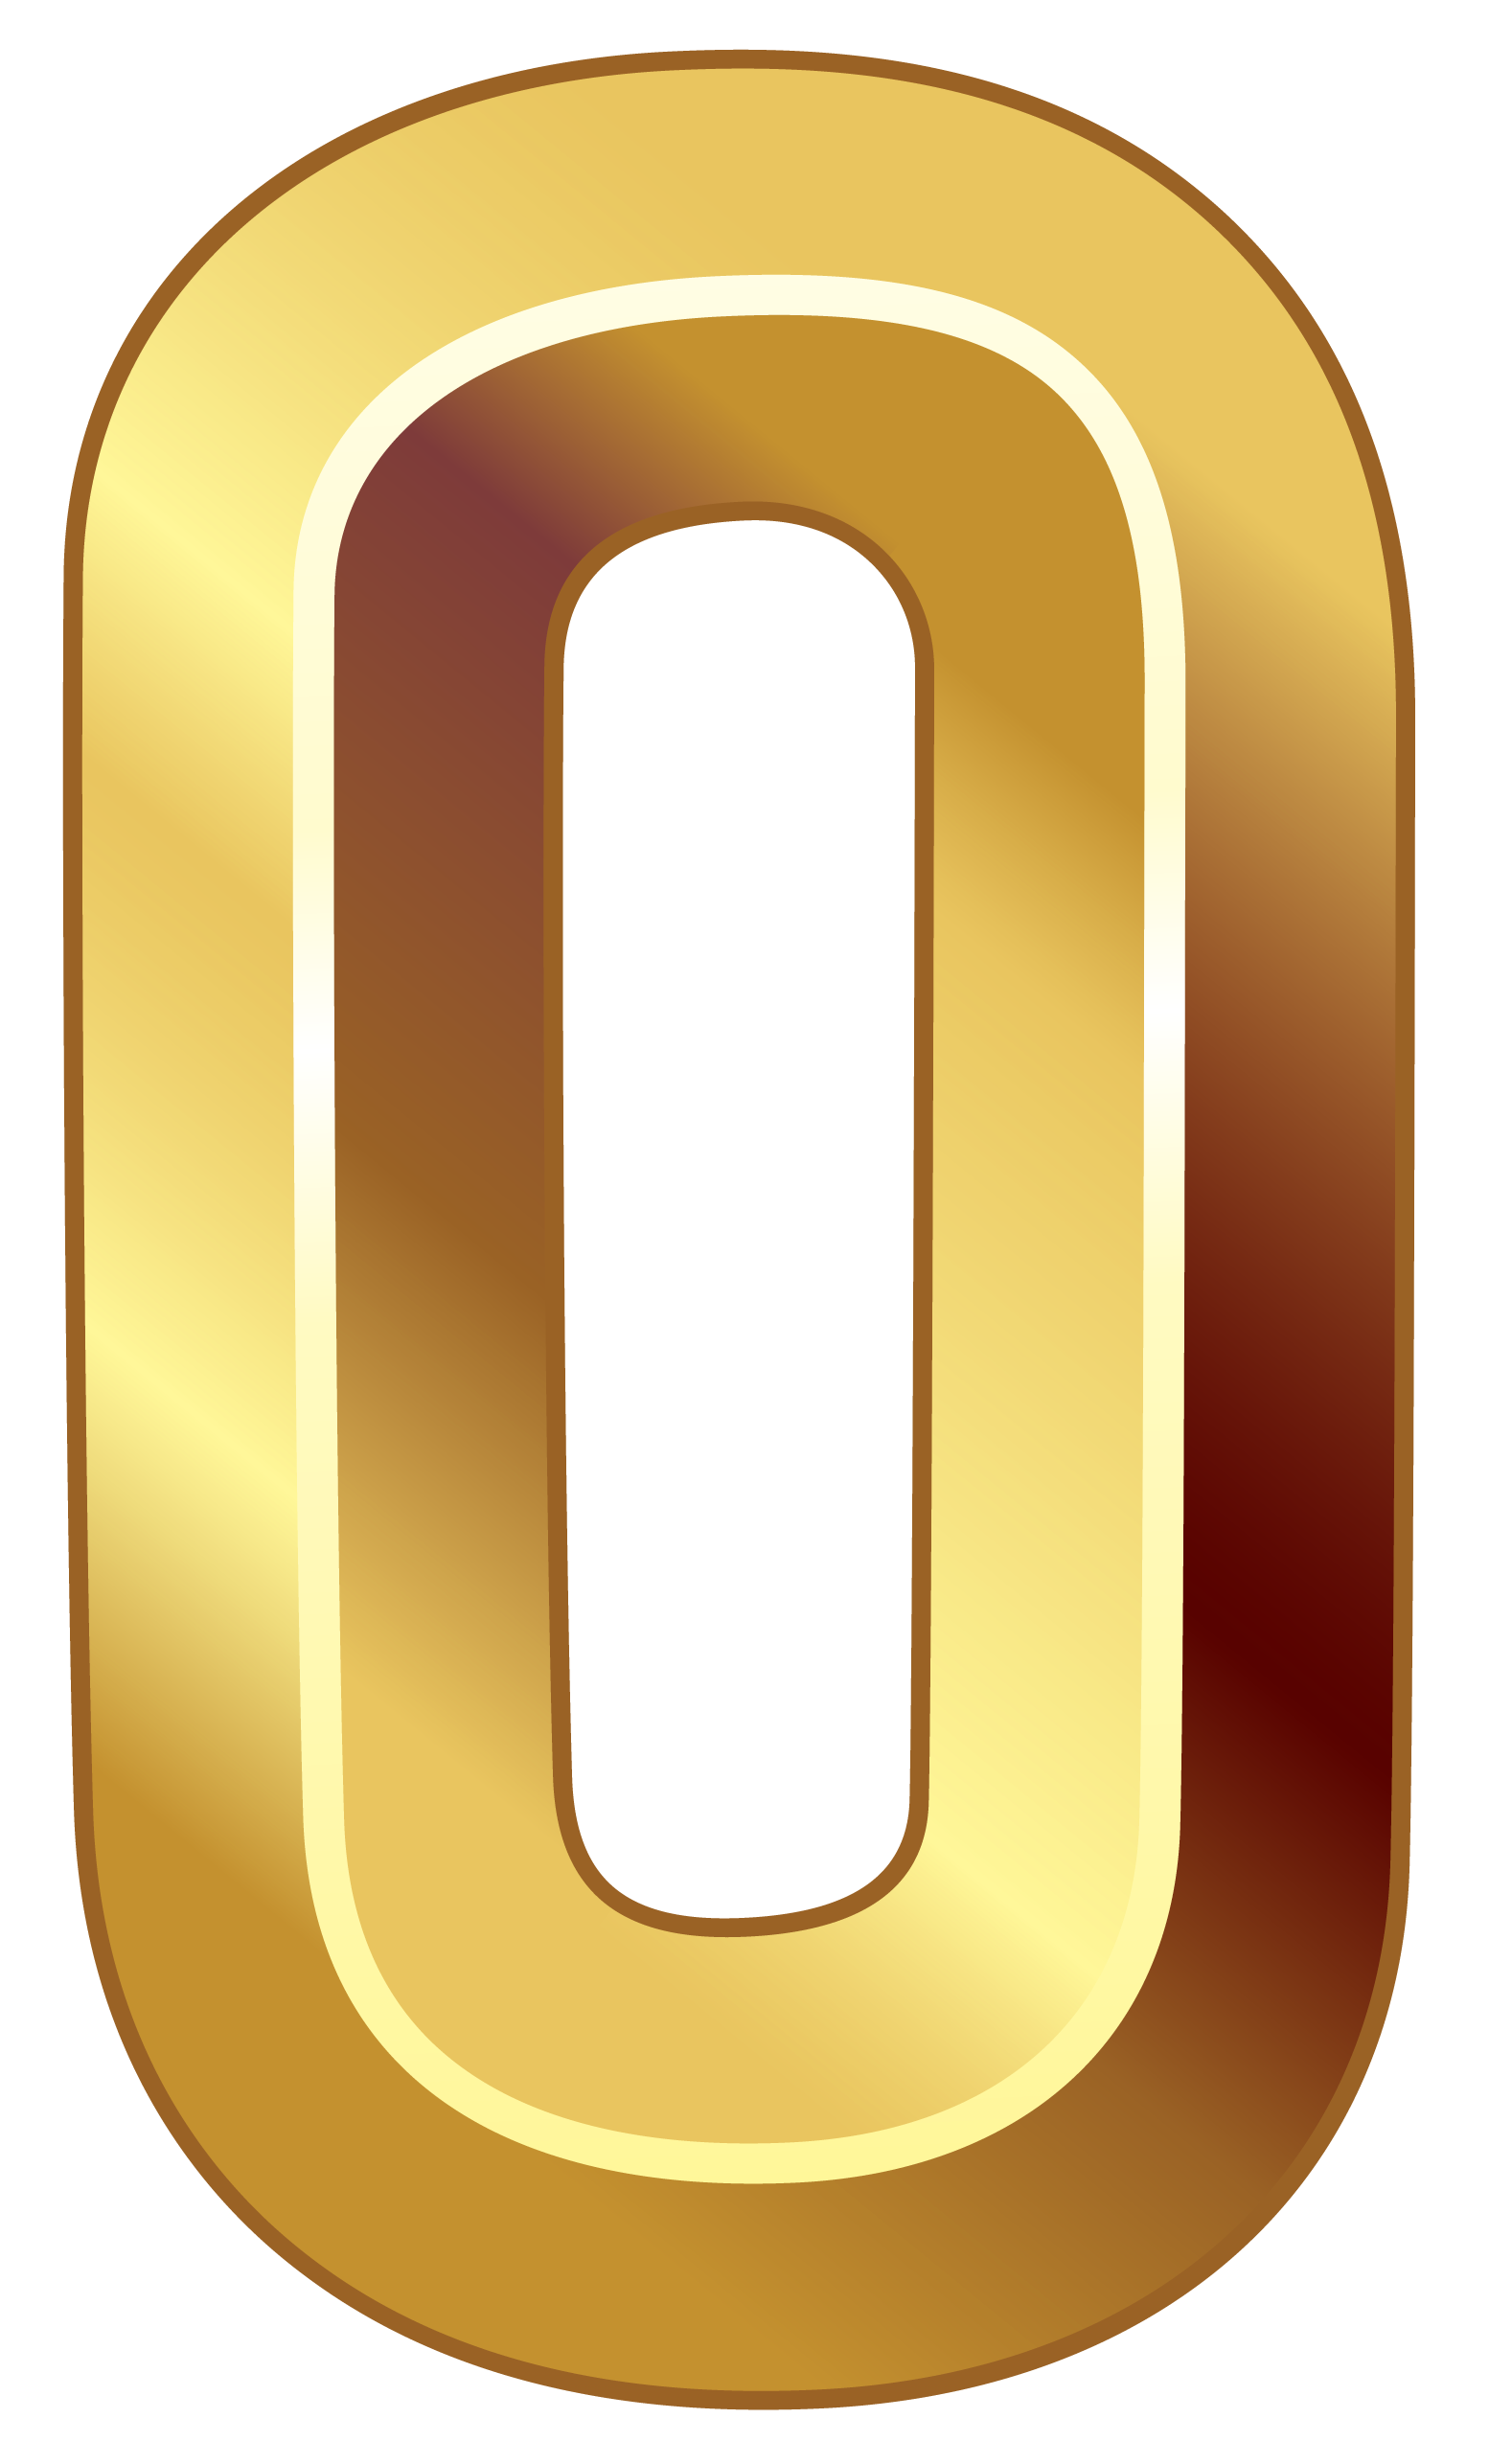 Gold Number Zero PNG Clipart Image Clip art, Clipart